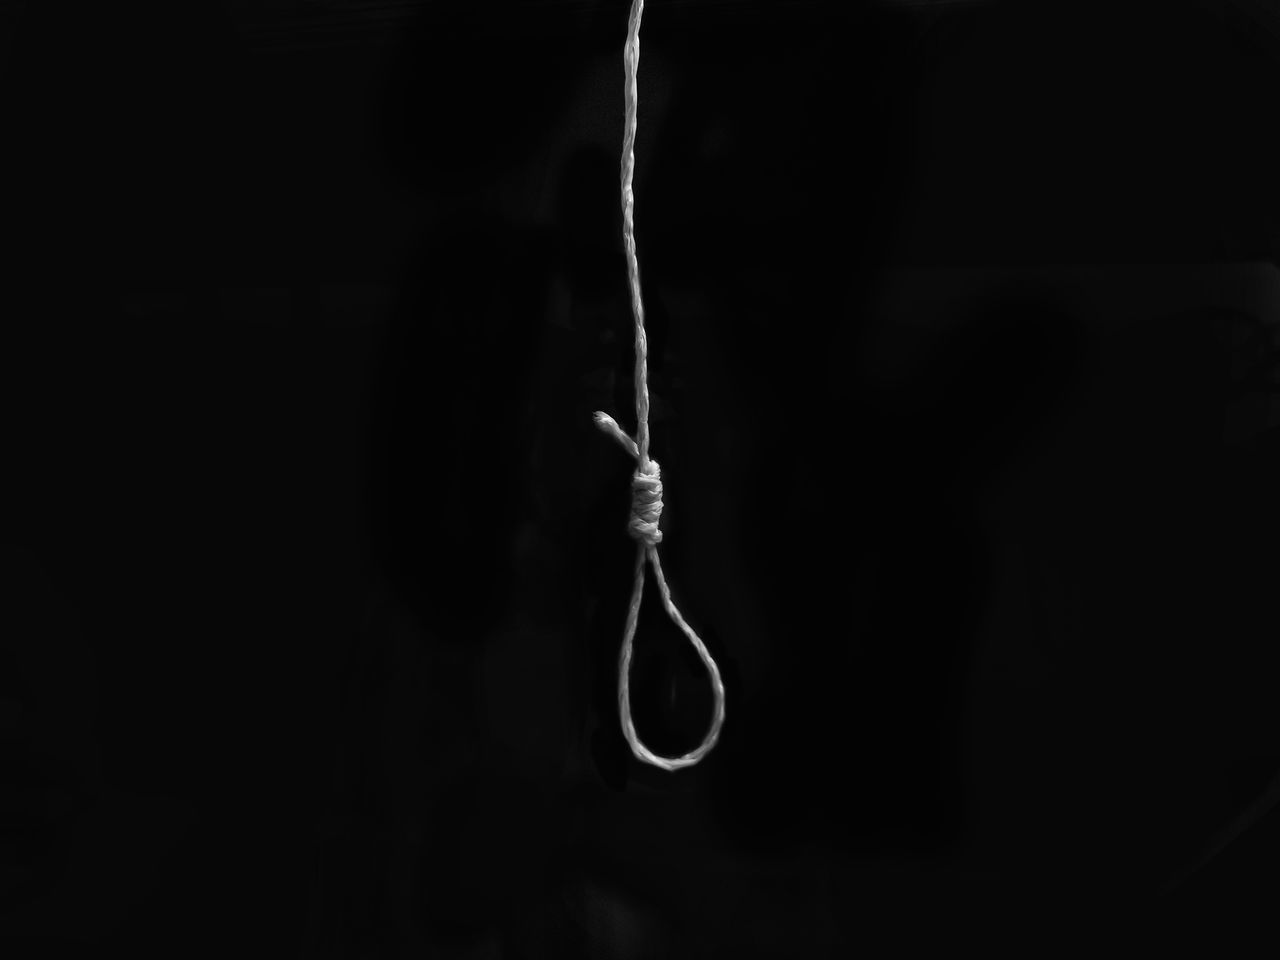 CLOSE-UP OF SILHOUETTE HANGING ON BLACK BACKGROUND